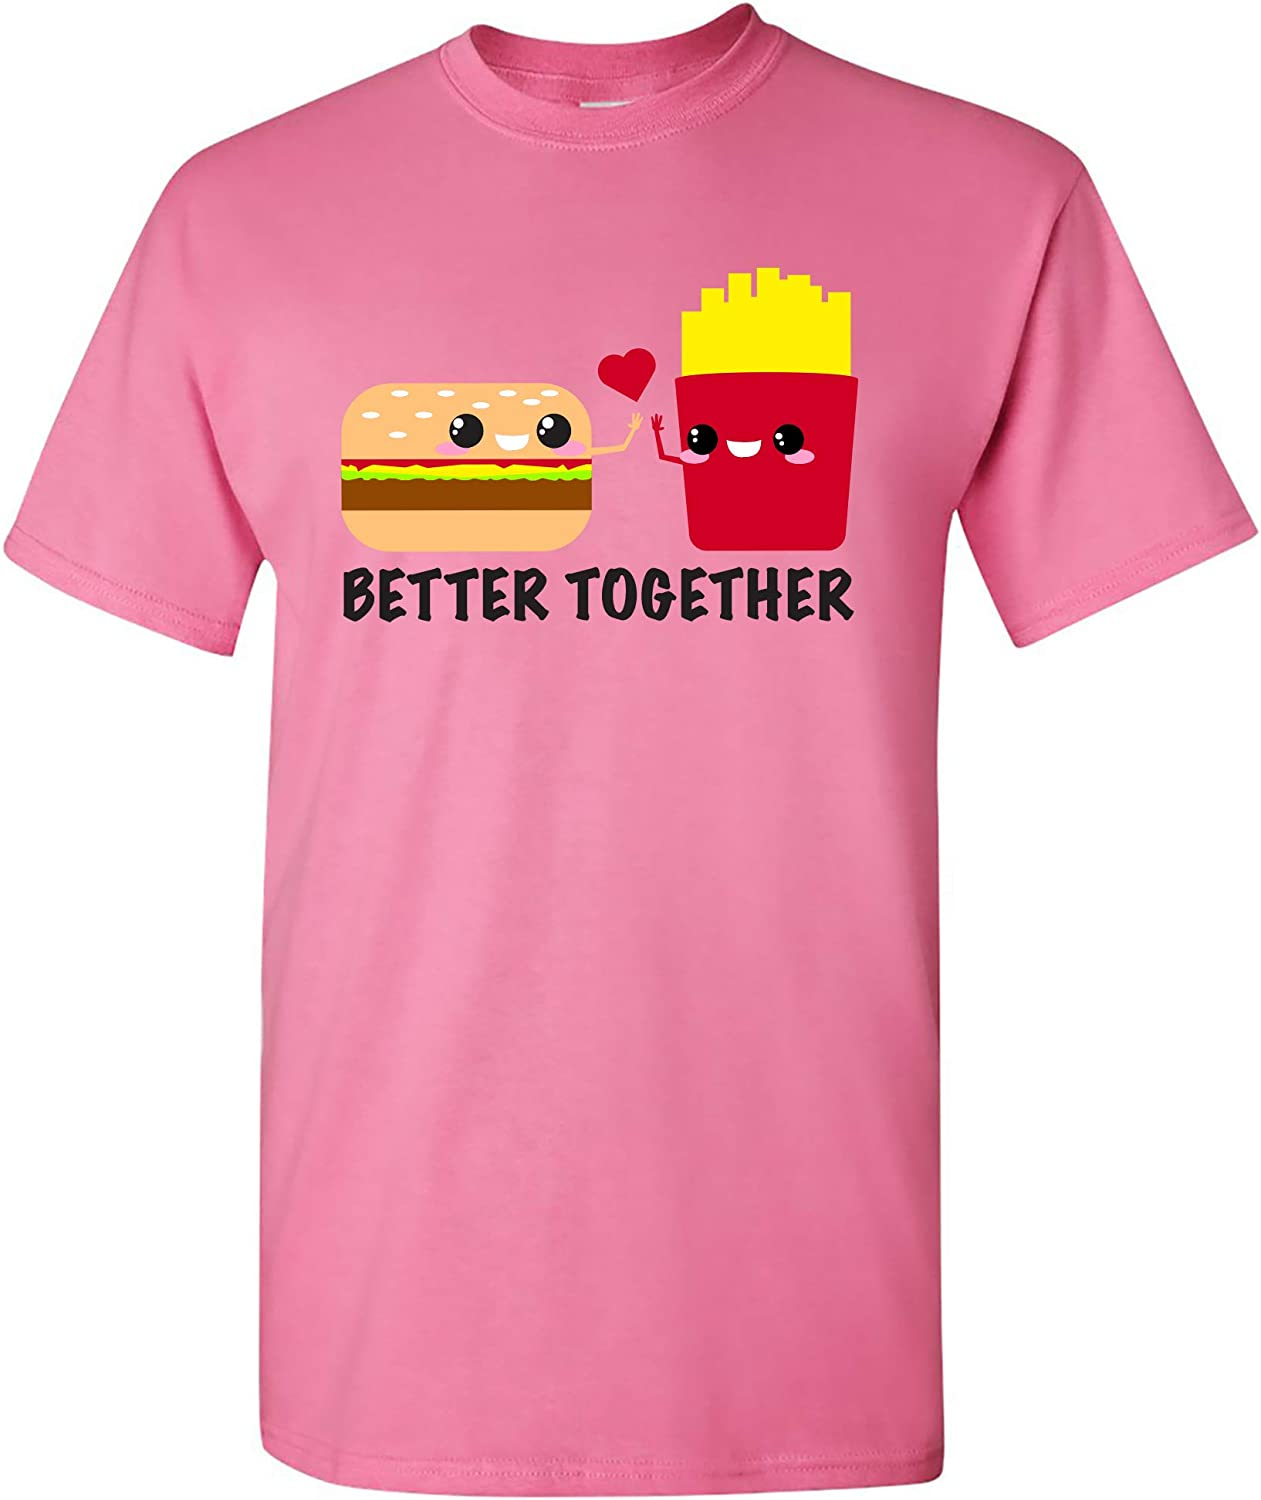 UGP Campus Apparel Better Together - Cheeseburger French Fries Fast Food Cute Cartoon T Shirt